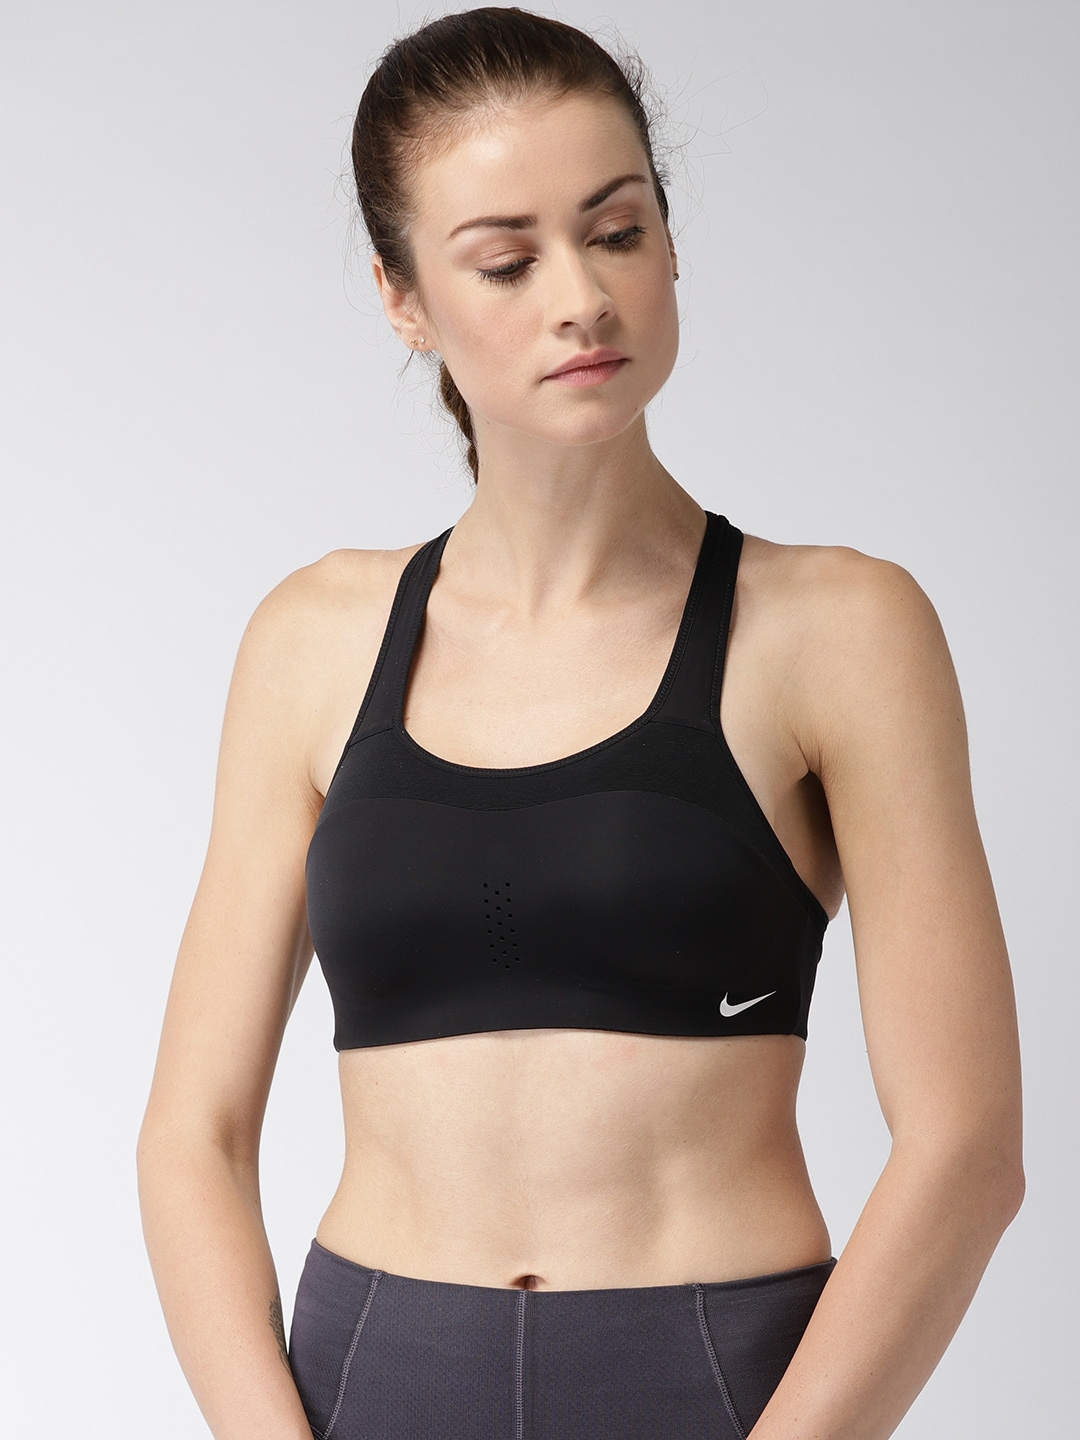 562d165615 Nike Dunes Sports Bra - Buy Nike Dunes Sports Bra online in India